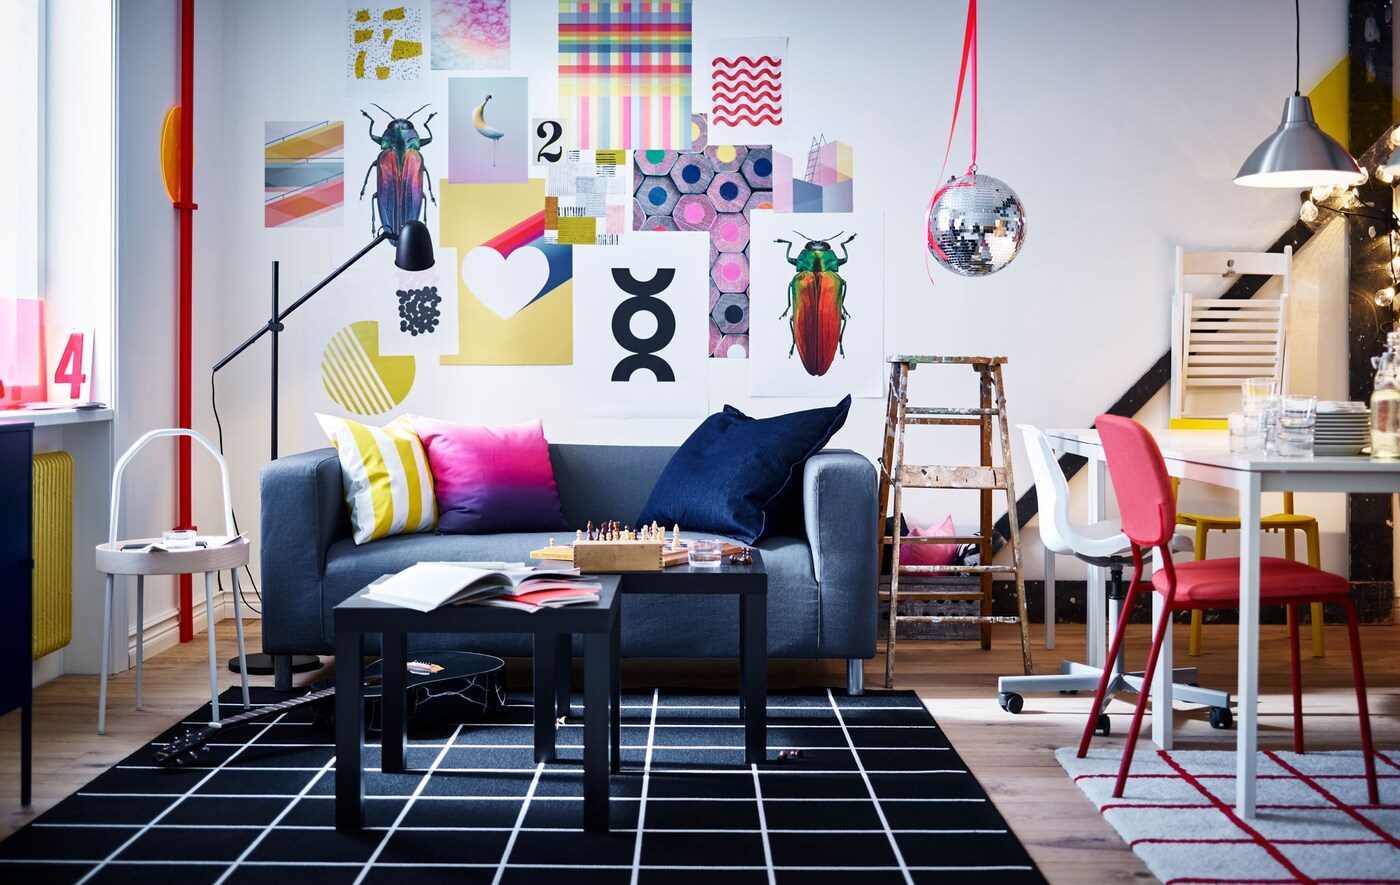 Link to IDEA blog 'A home where friends become as close as family' - image of a vibrant living room and workspace.